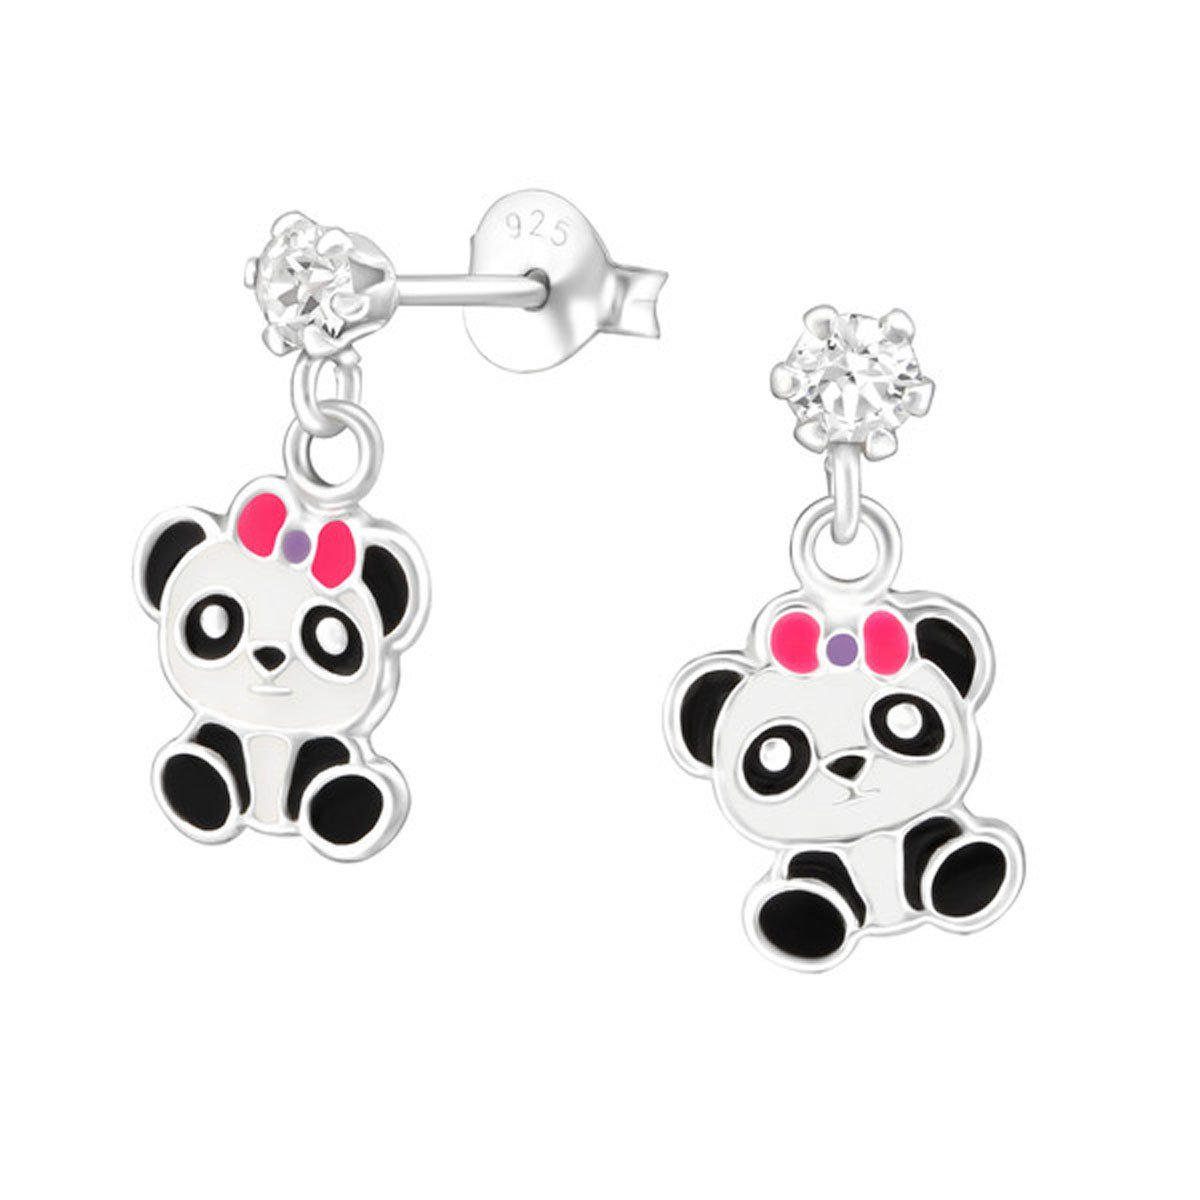 Cute Panda Bear Earrings Girls made with Swarovski Crystals and Sterling Silver 925 Nickle Free (32851)